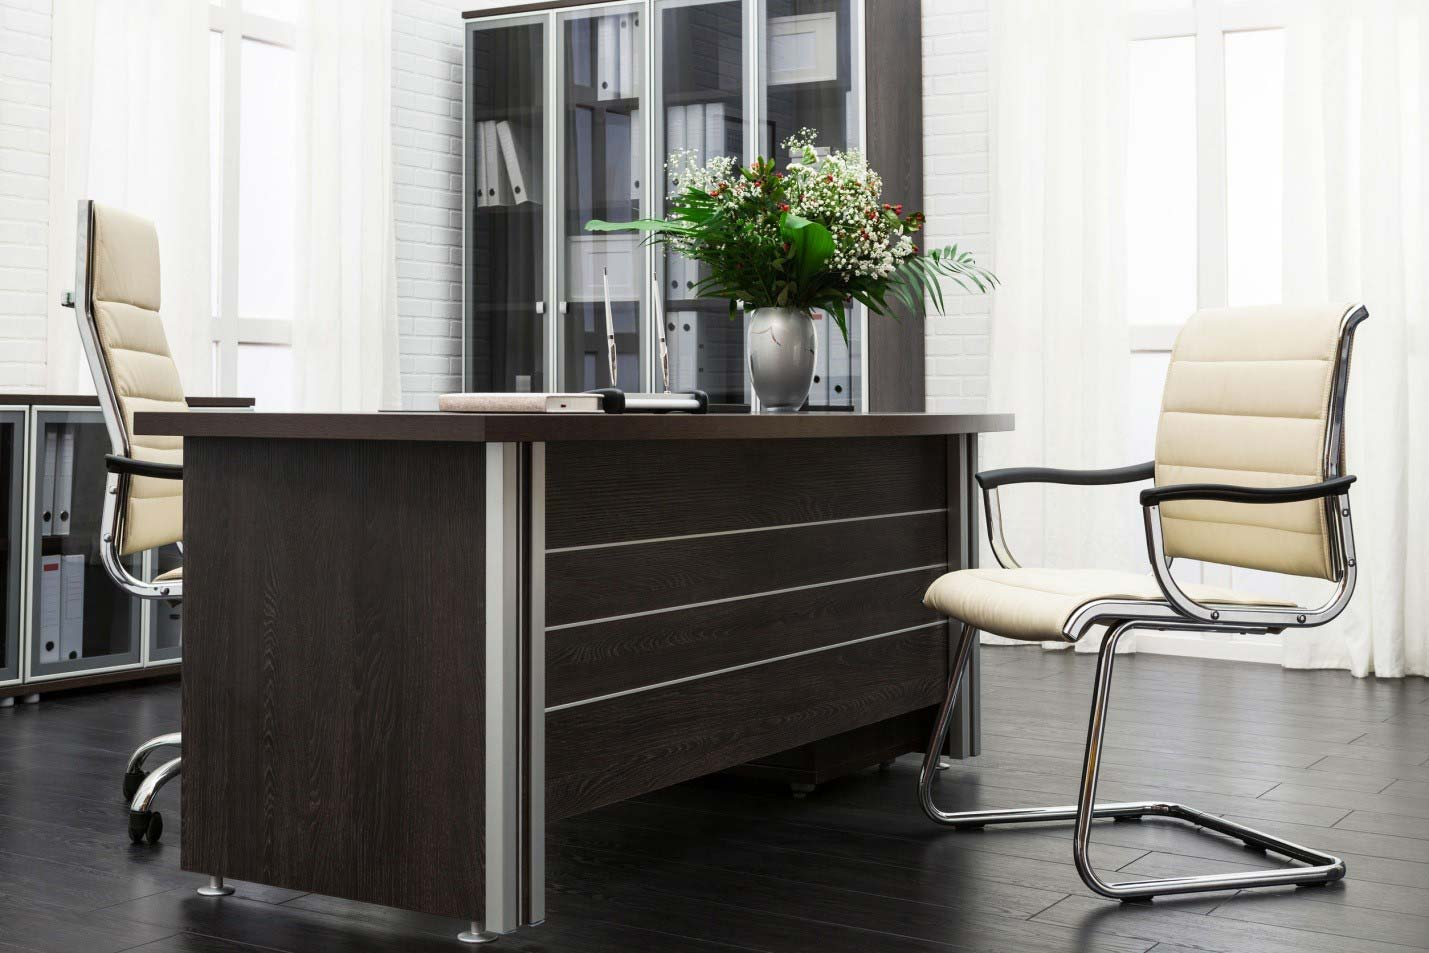 23 luxury office furniture design toronto - Home office furniture toronto ...